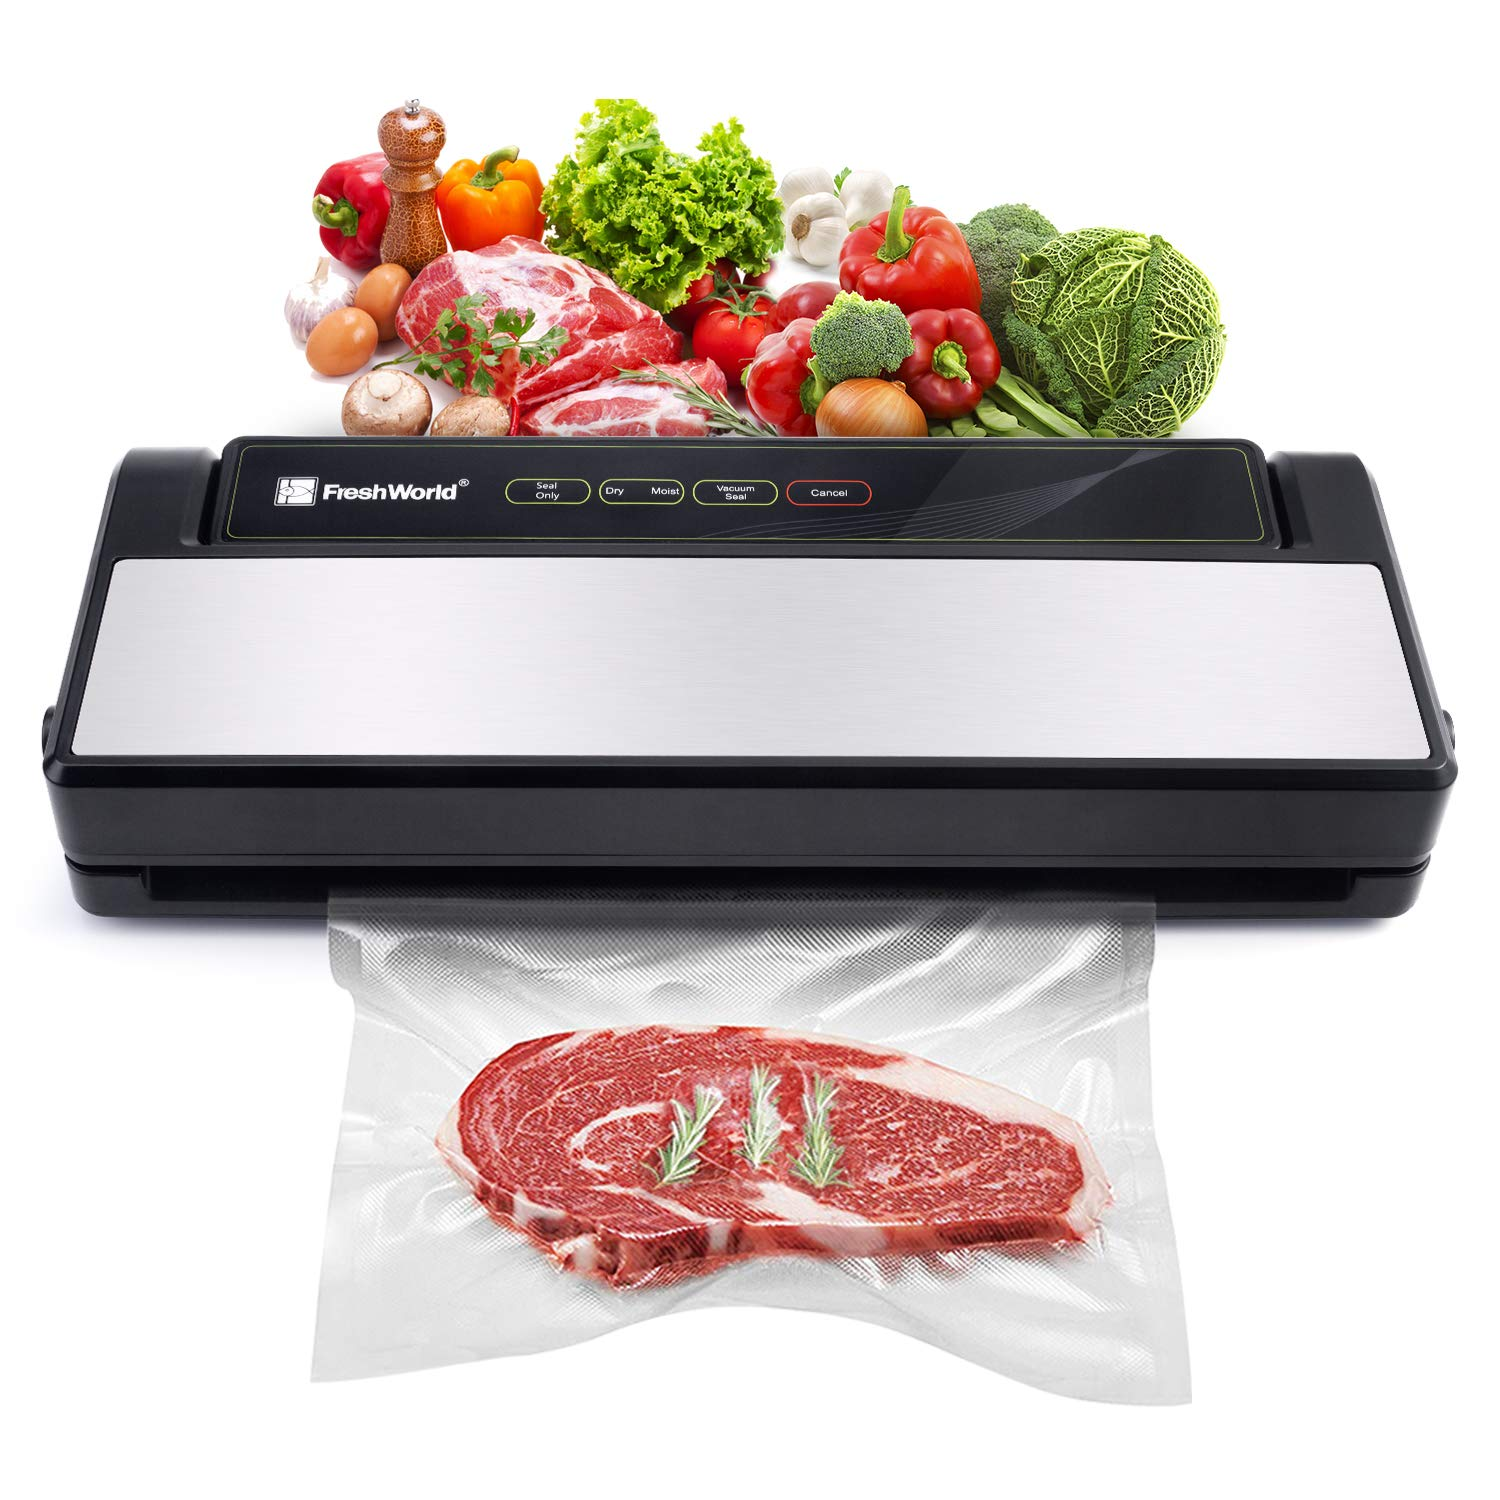 Food Vacuum Sealer Machine w Starter Kit 32 cm Sealing Length Stainless Steel Cover Led Indicator Lights Dry Moist Food Modes Compact Design TVS-2018